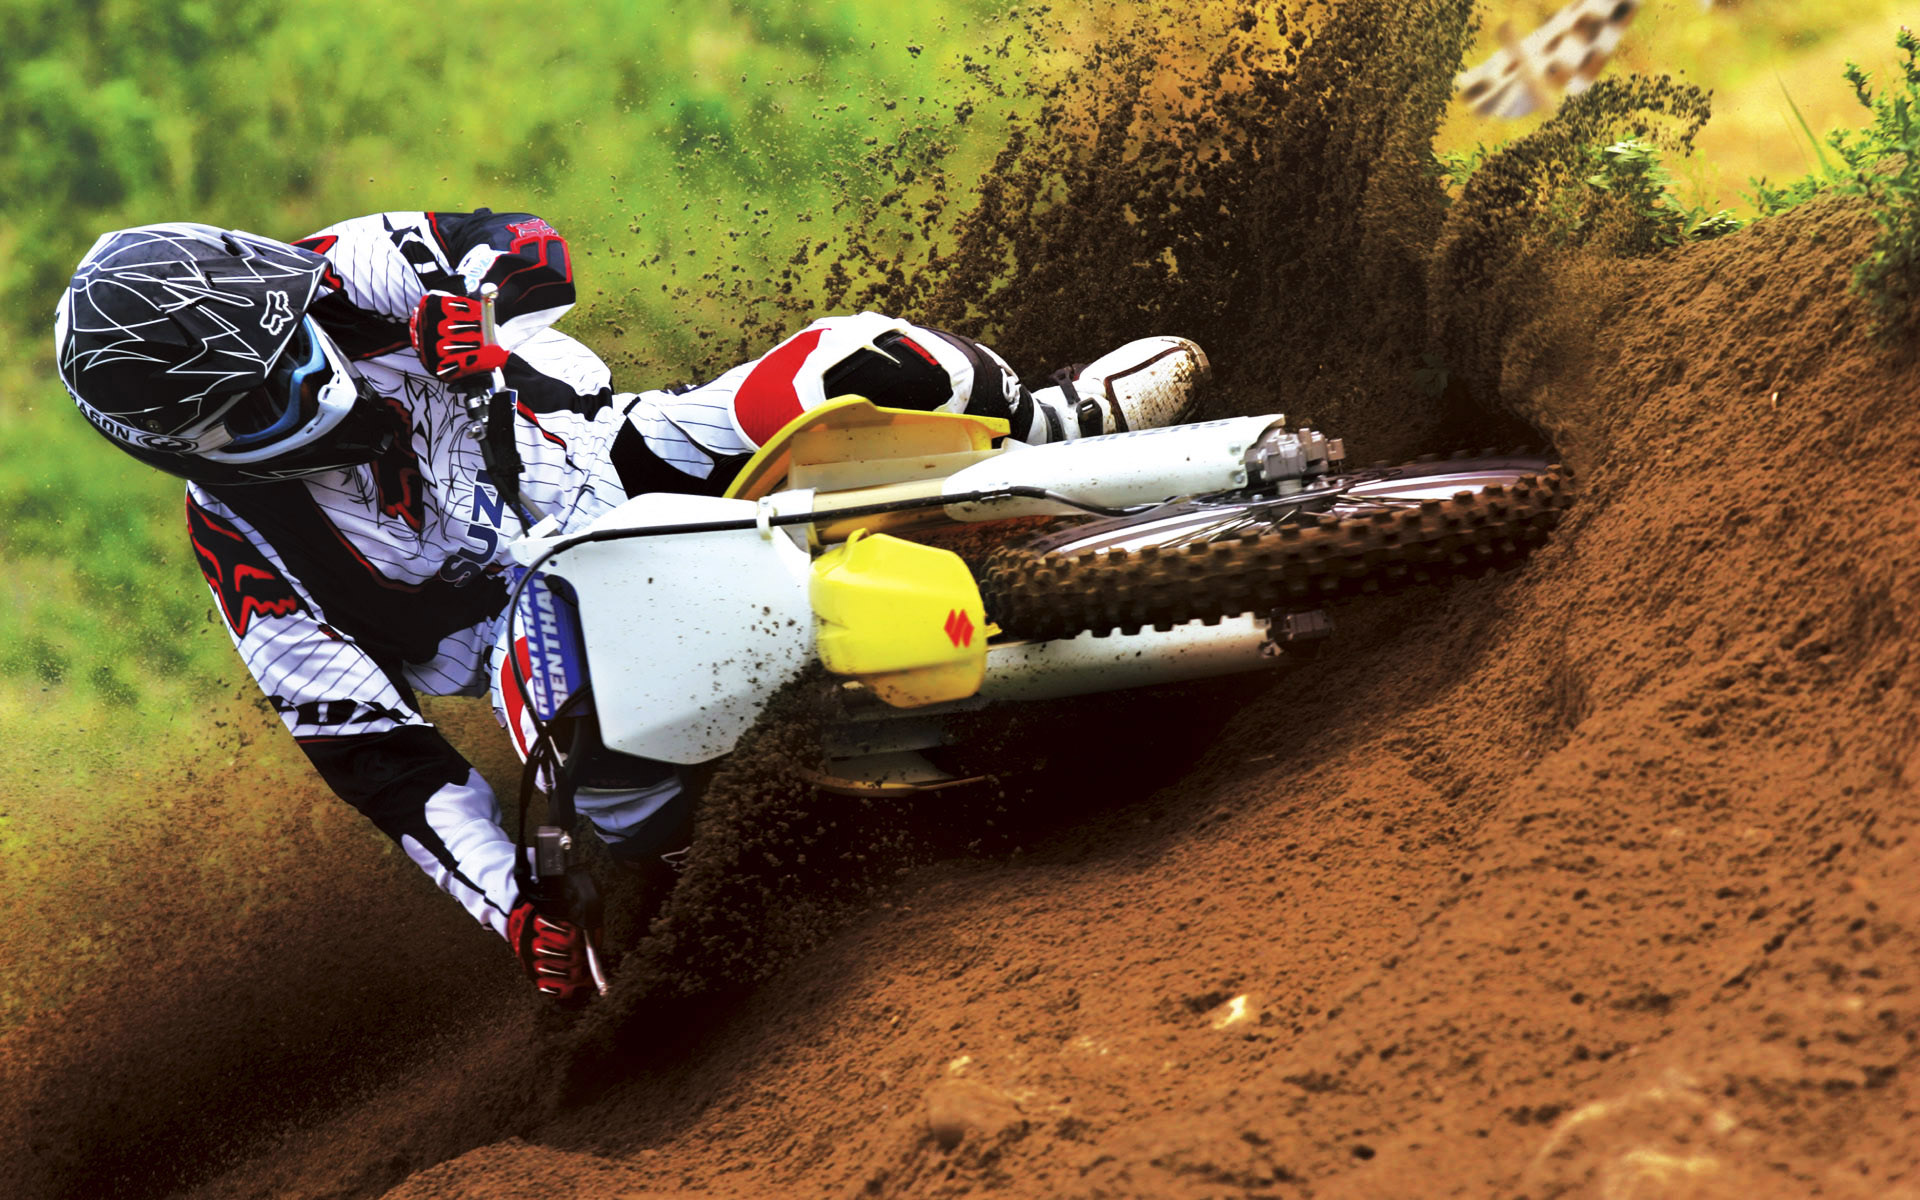 Wallpaper HD Moto Cross   Taringa 1920x1200